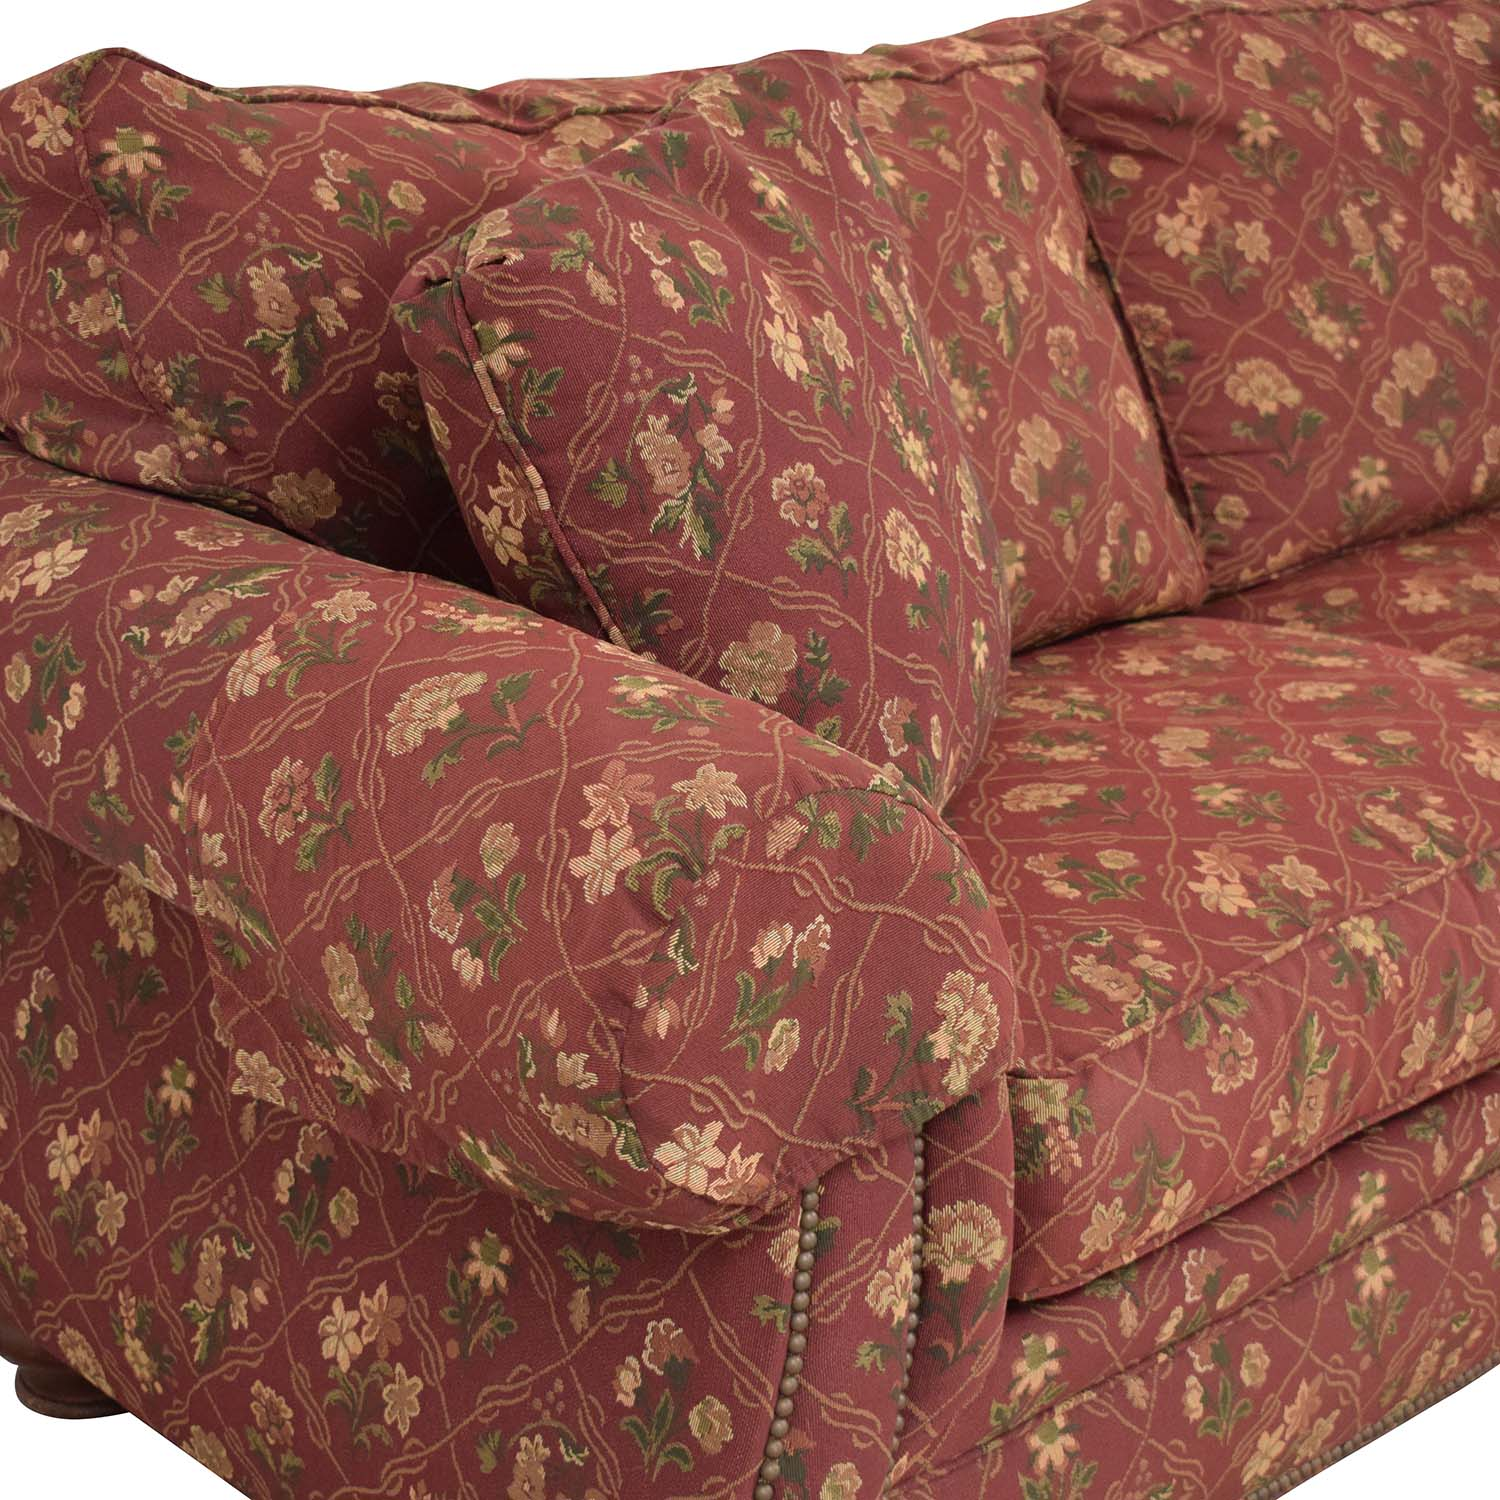 Broyhill Furniture Broyhill Furniture Laramie Sofa ma